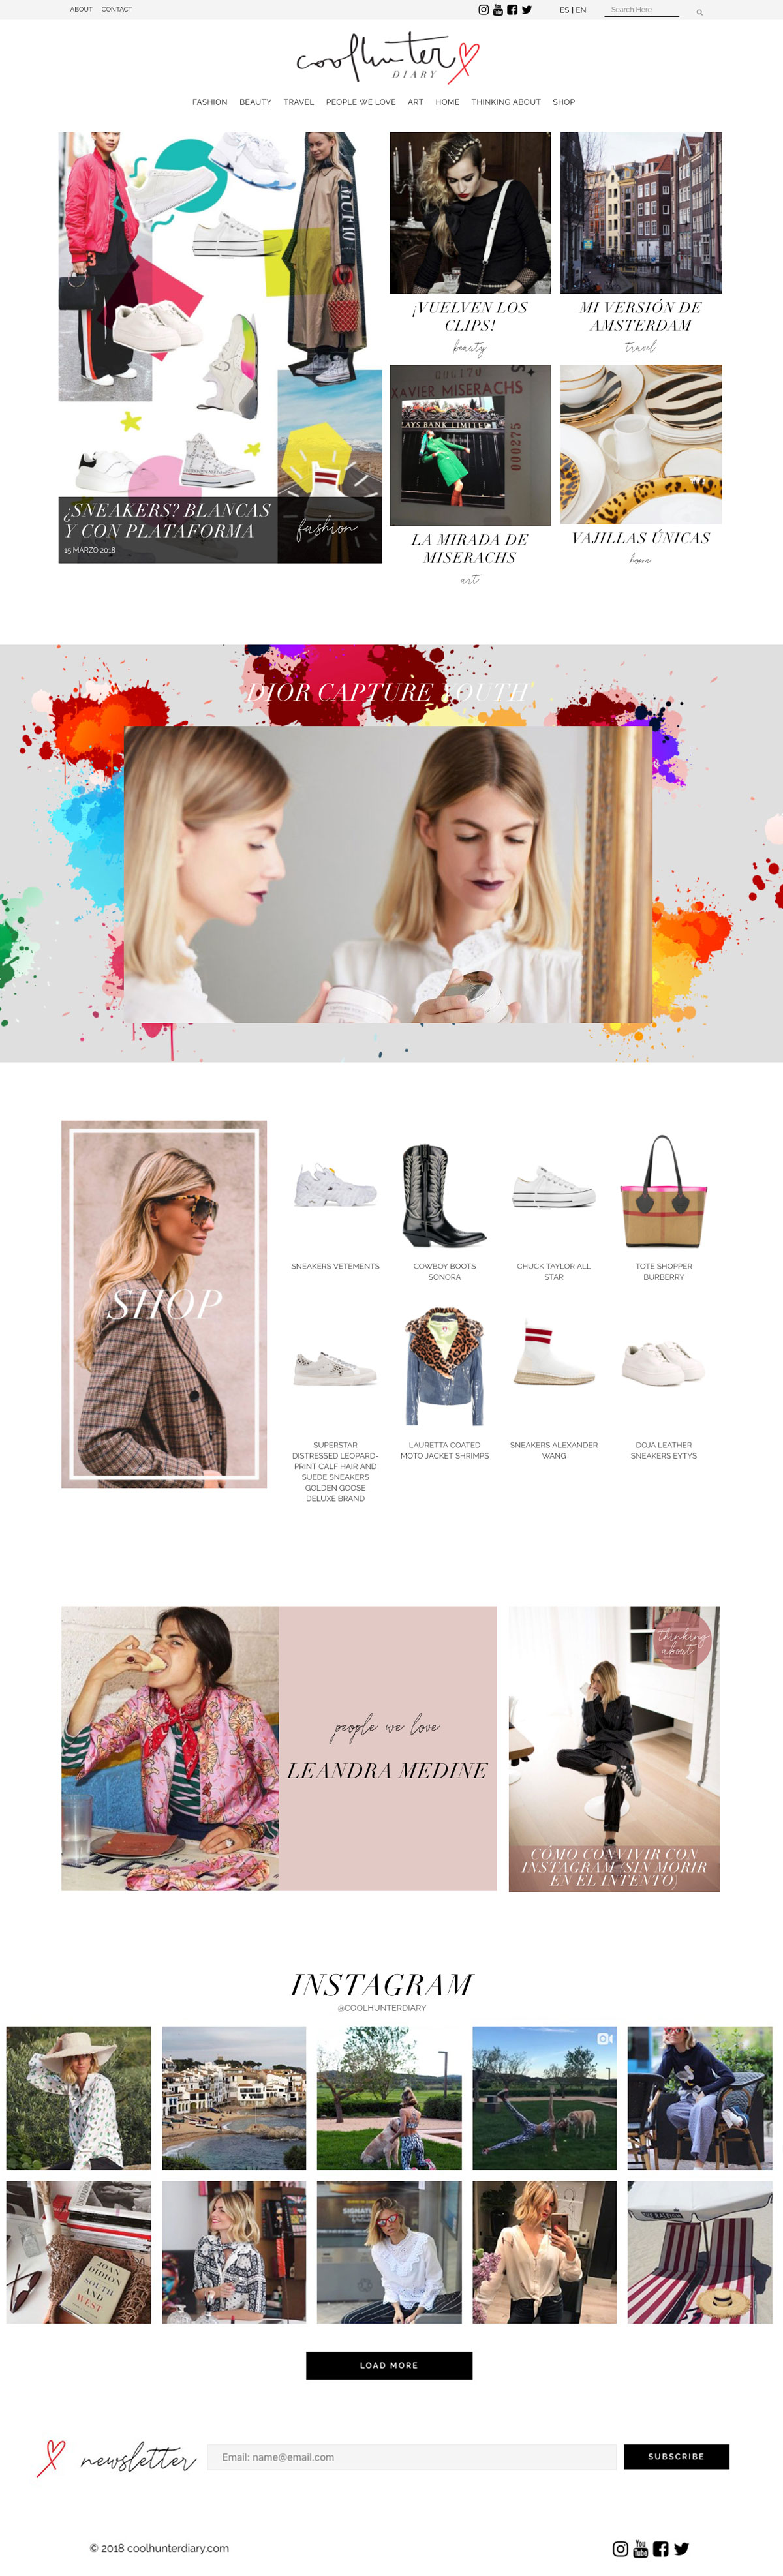 Coolhunter Diary ★ Web de moda y tendencias ★ Website